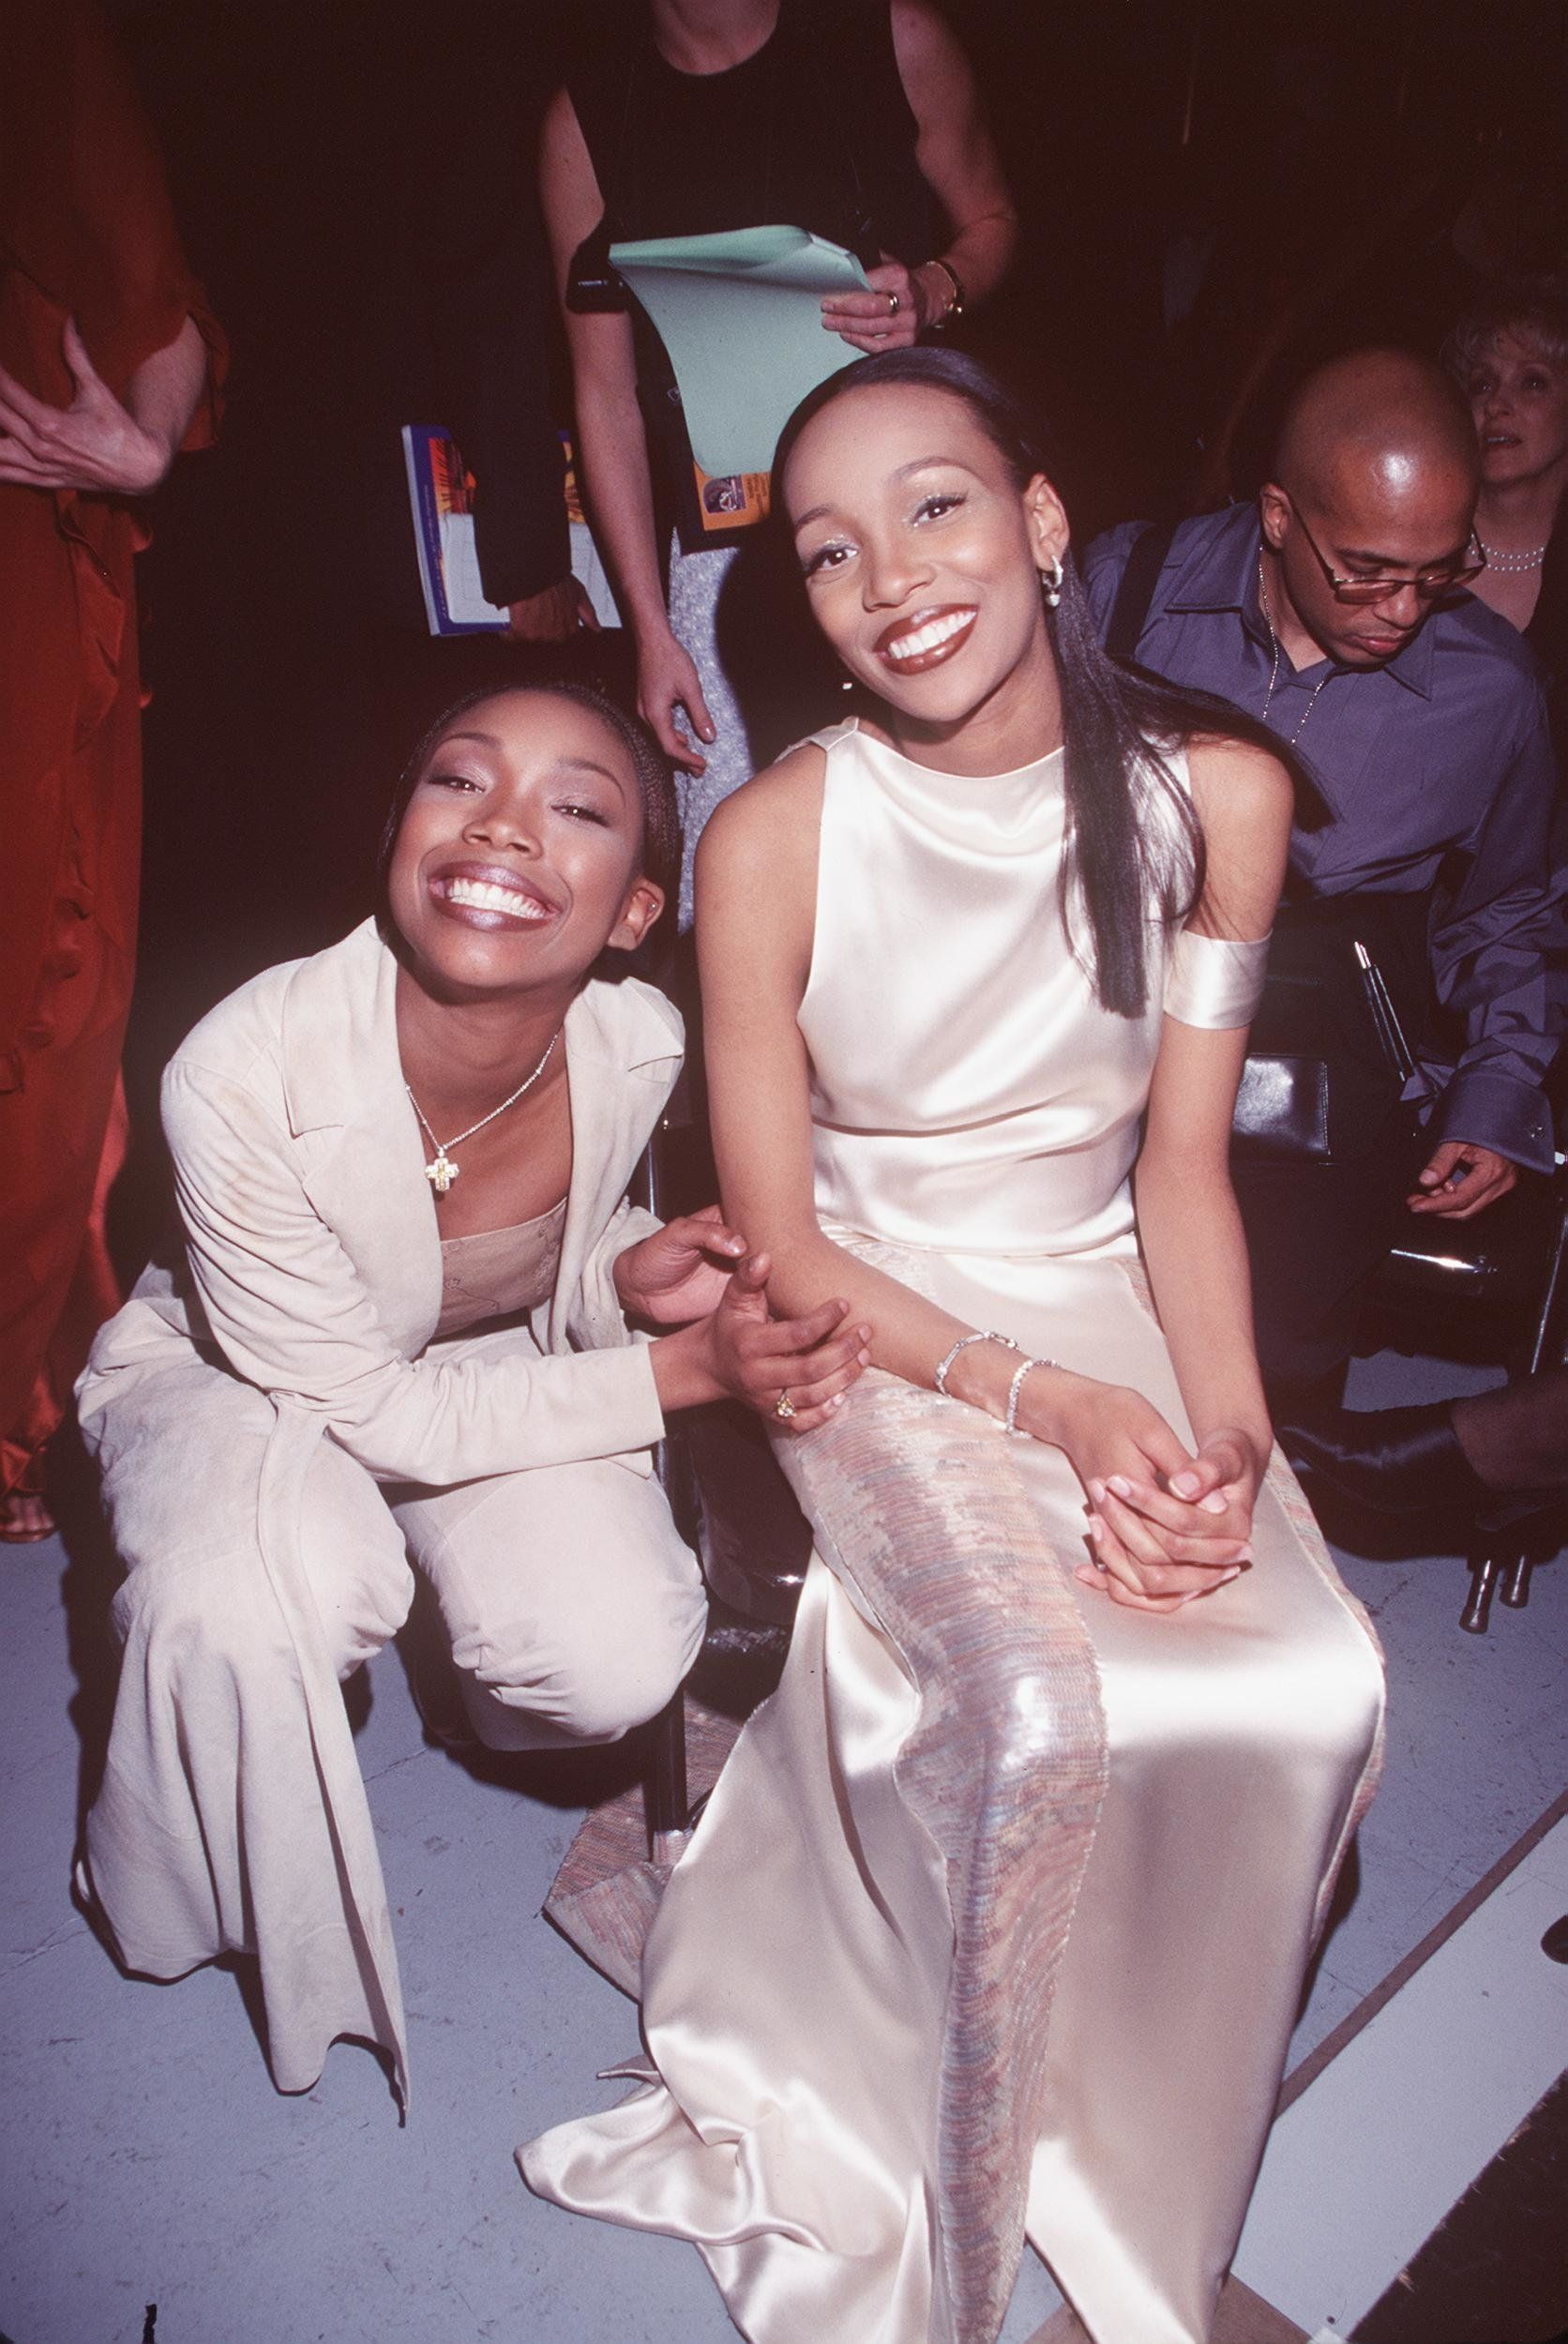 2/24/99 Los Angeles, Ca. Brandy And Monica Were All Smiles At The 41St Annual Grammy Awards. (Photo By Ron Wolfson/Getty Images)